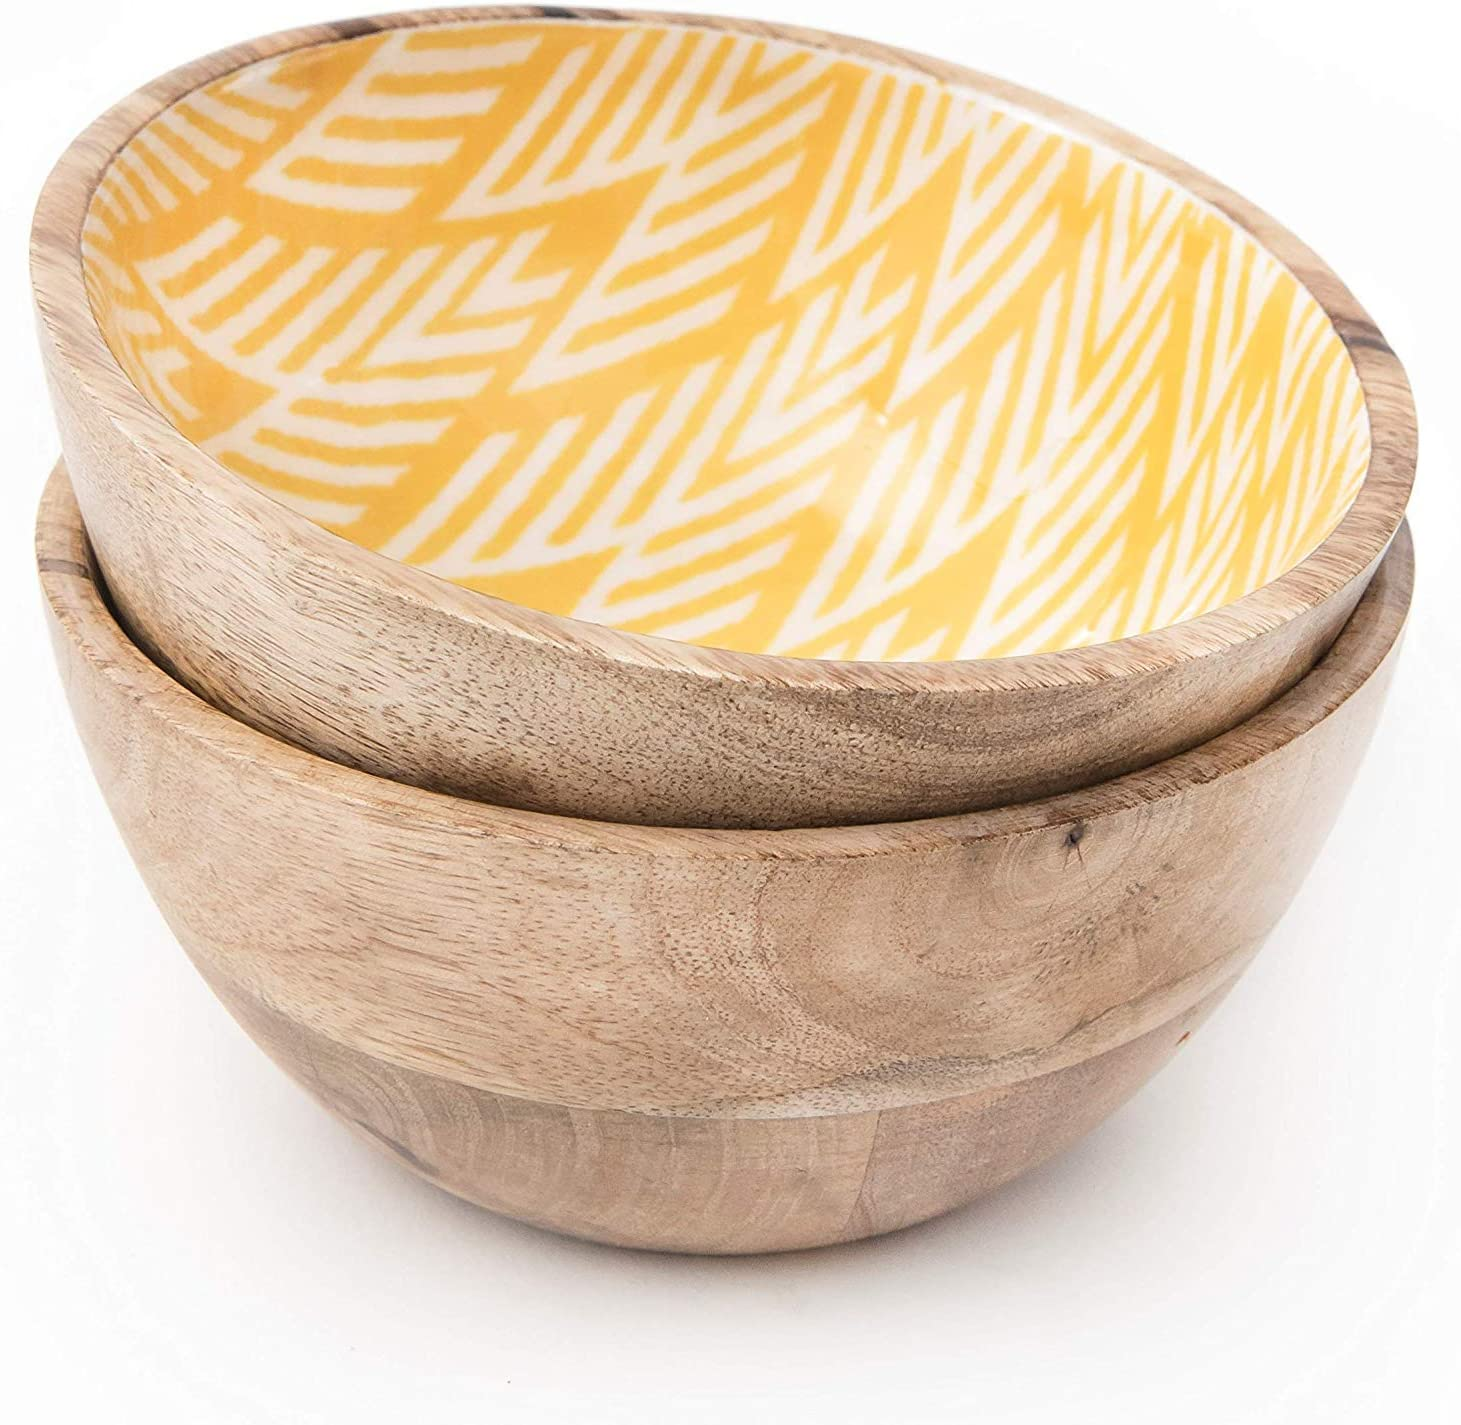 Wooden Bowls for Food or Salad Bowls Set, Small Bowl for Serving Pasta and Cereal, Set of 2 Wood Bowl, 6 inch by 3 inch, Mango Wood, Yellow Ikkat